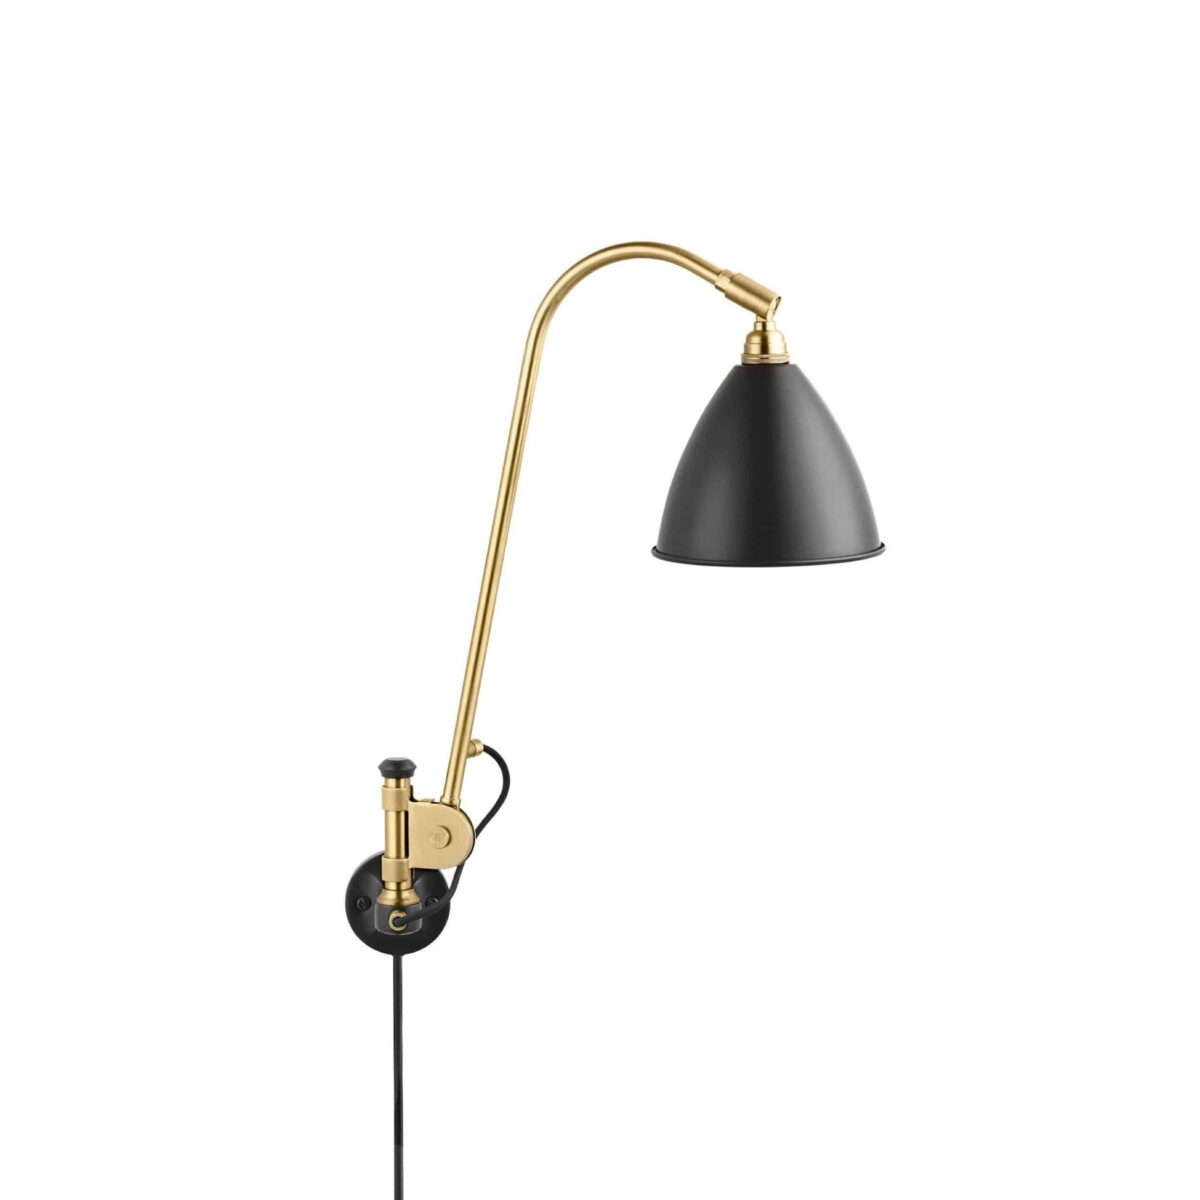 gubi-bestlite-wall-lamp-BL6-charcoal-black-brass-01